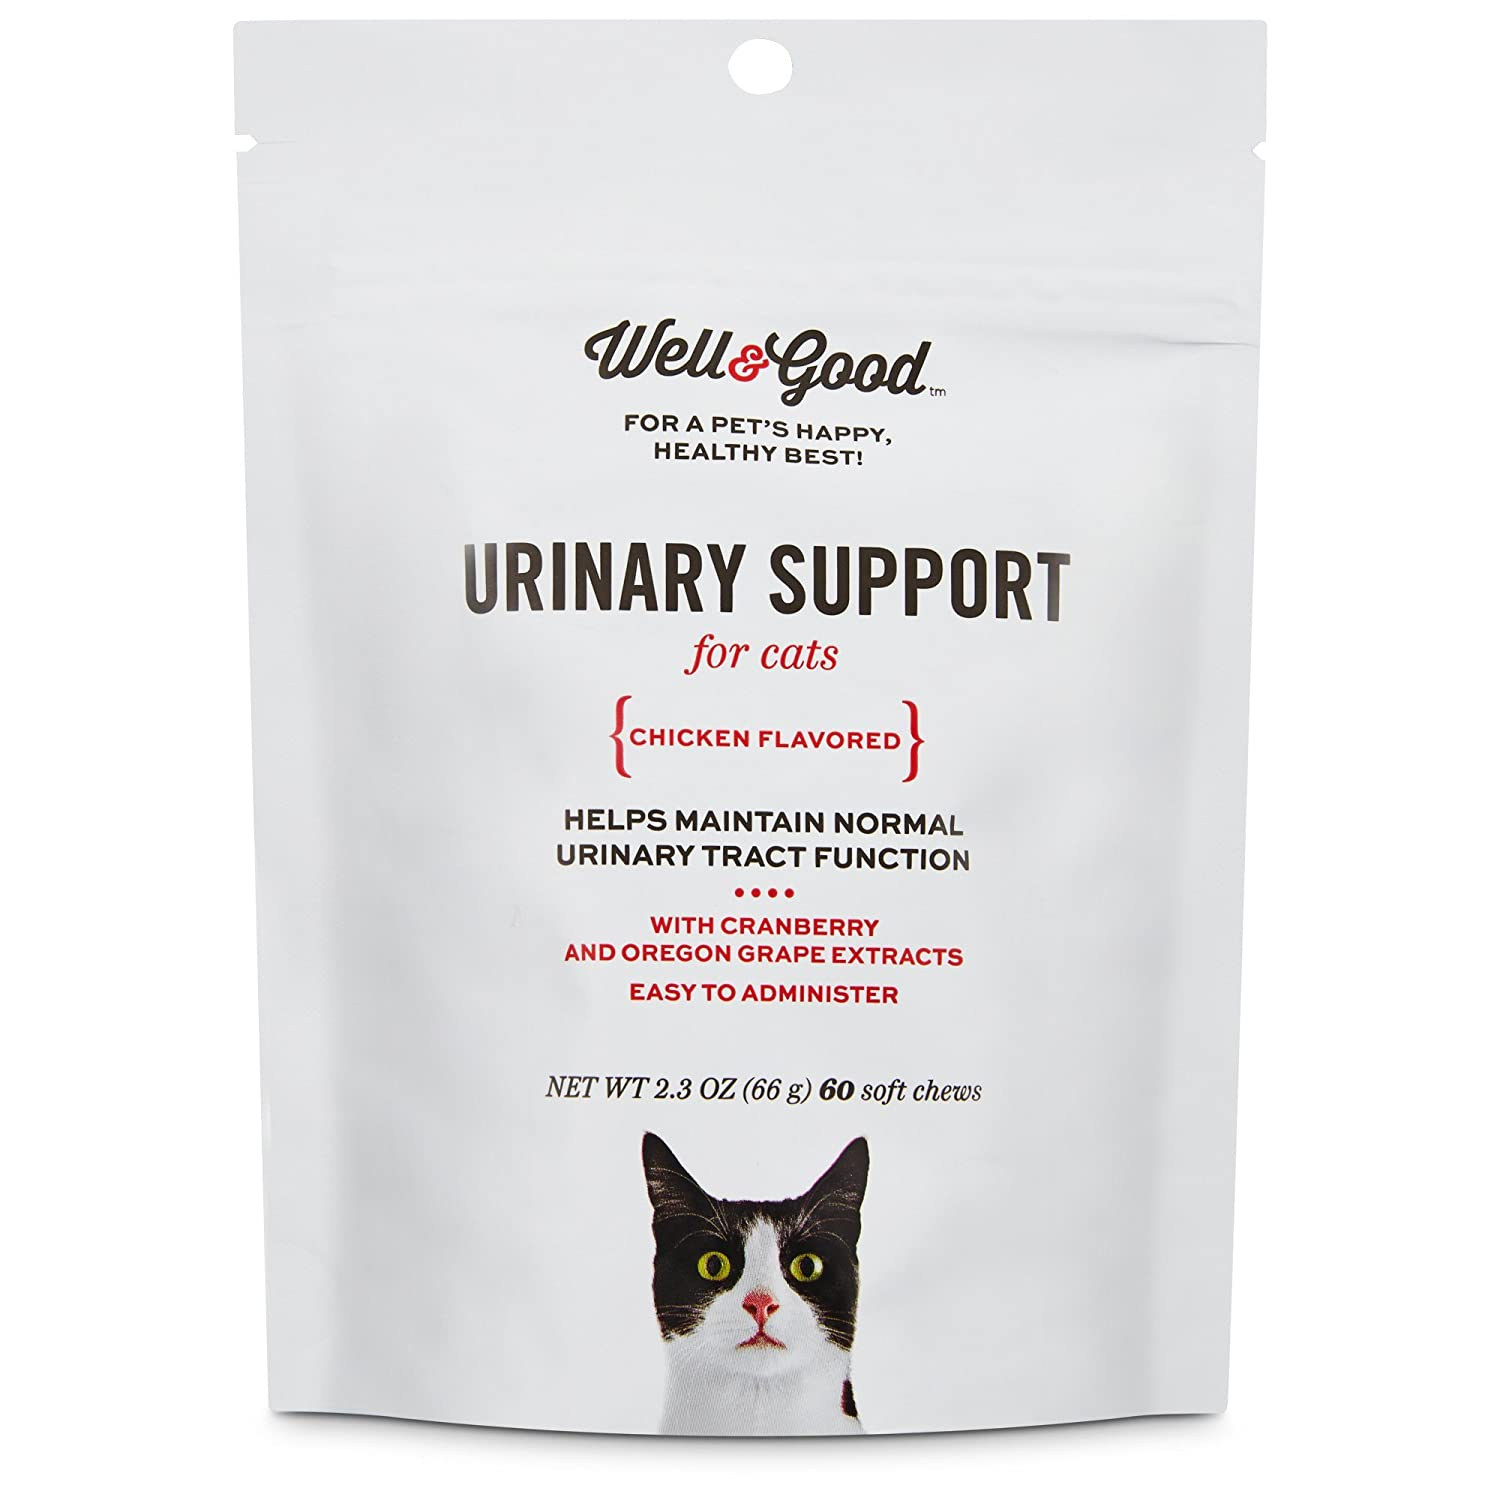 2.3 OZ Well & Good Urinary Support Cat Chews, Pack of 60 Chews, 2.3 OZ